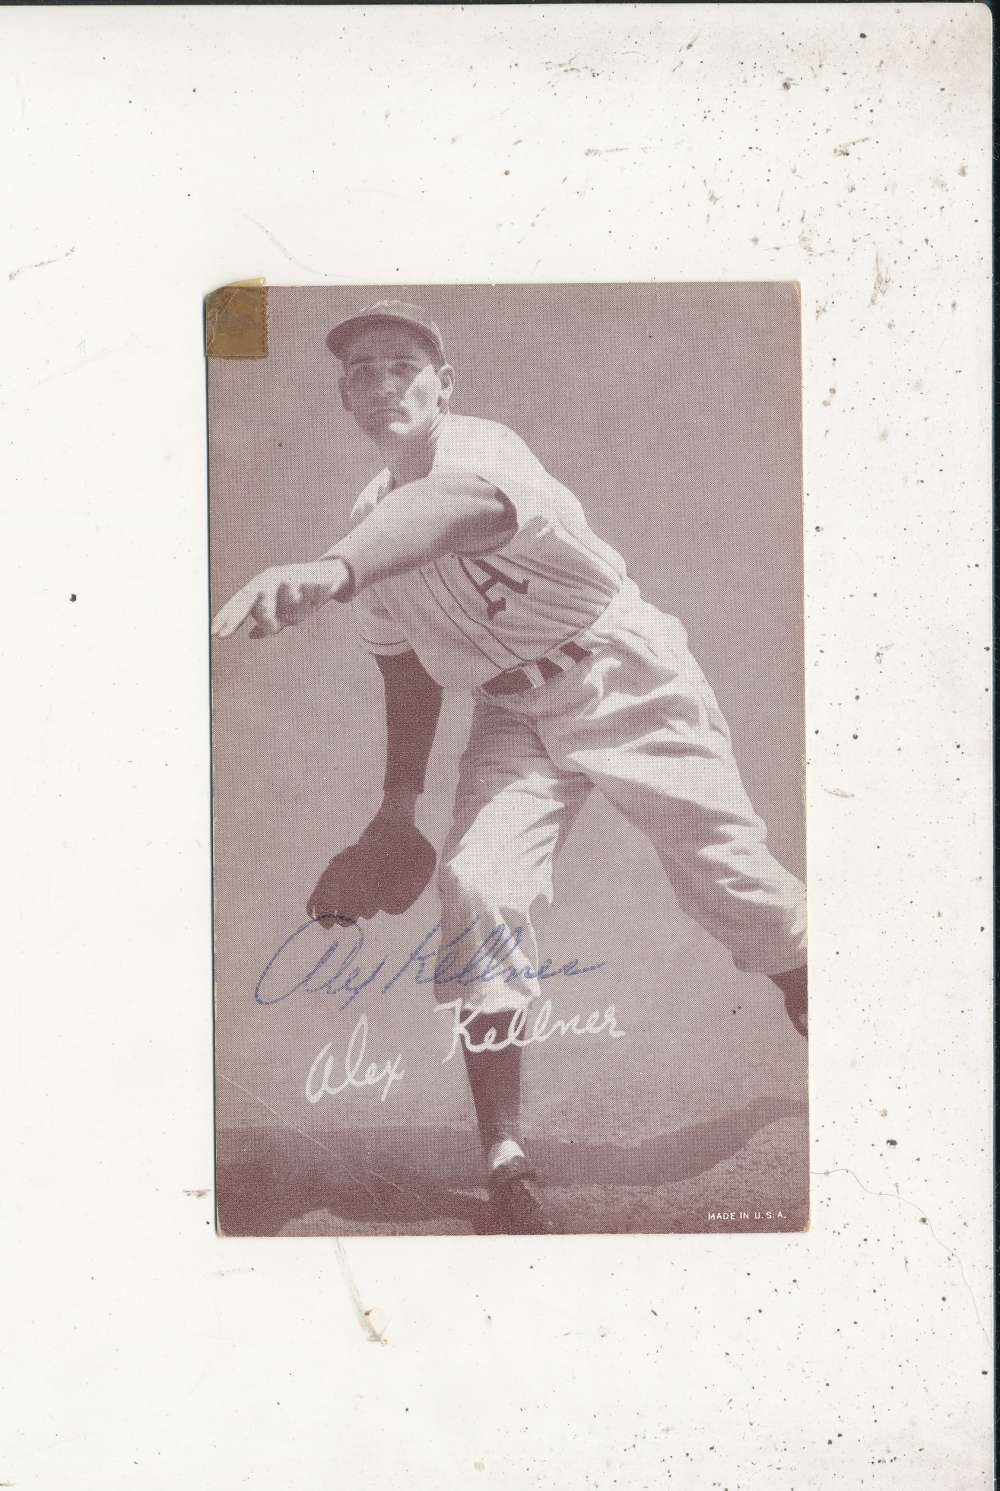 Alex Kellner A's  Signed 1946-1966 exhibit card